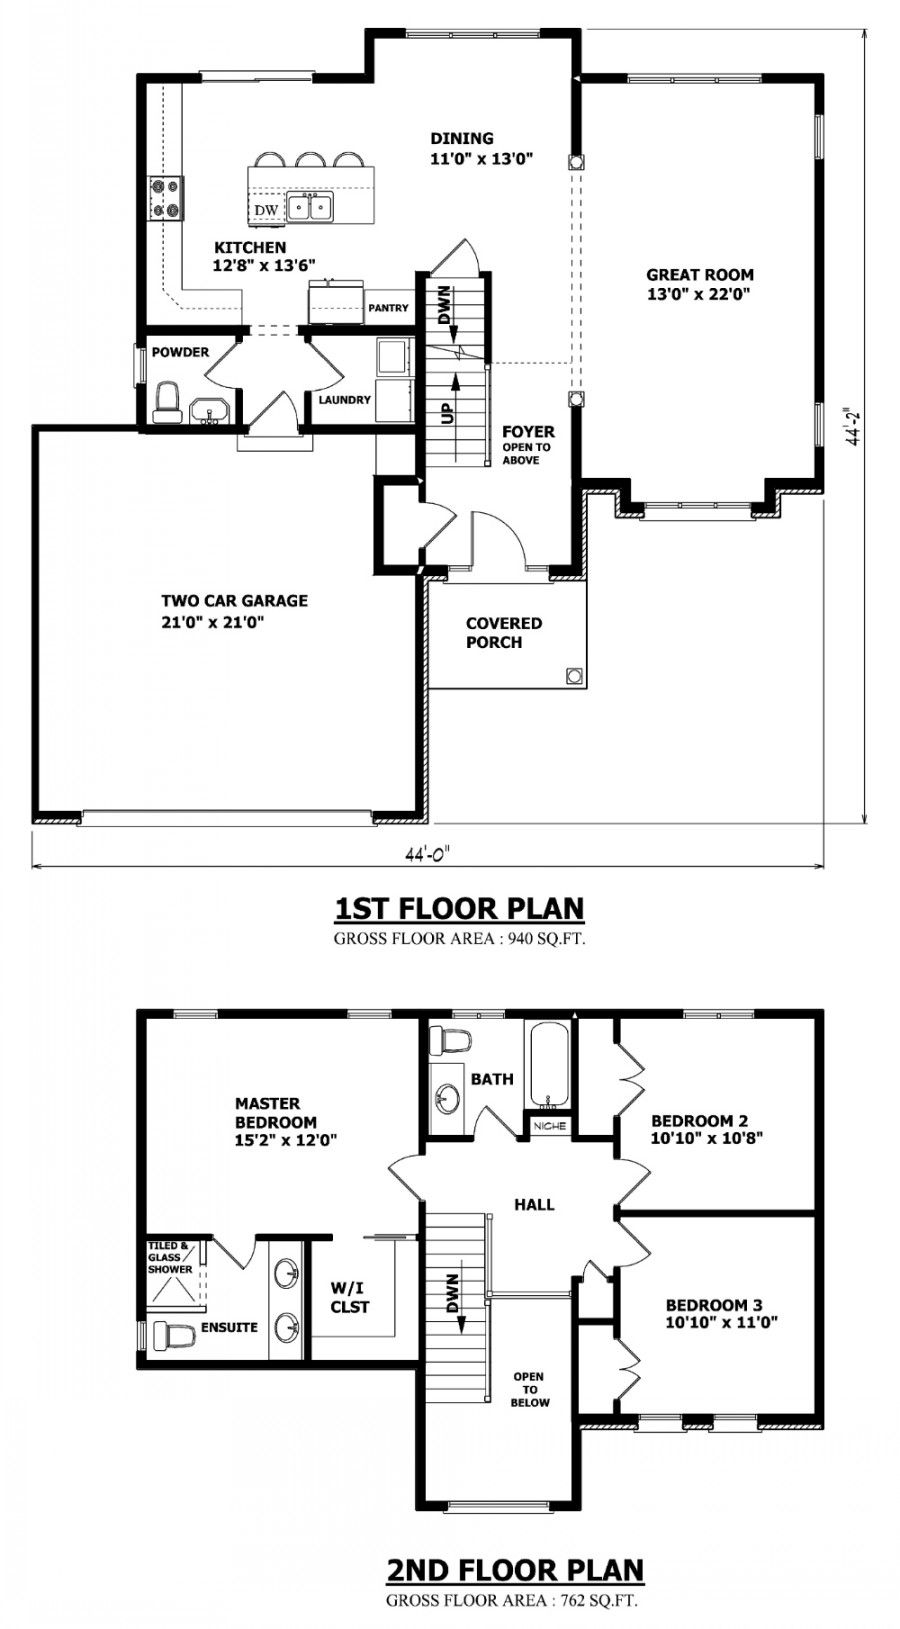 Home designs custom house plans stock house plans amp for Second floor house plans indian pattern